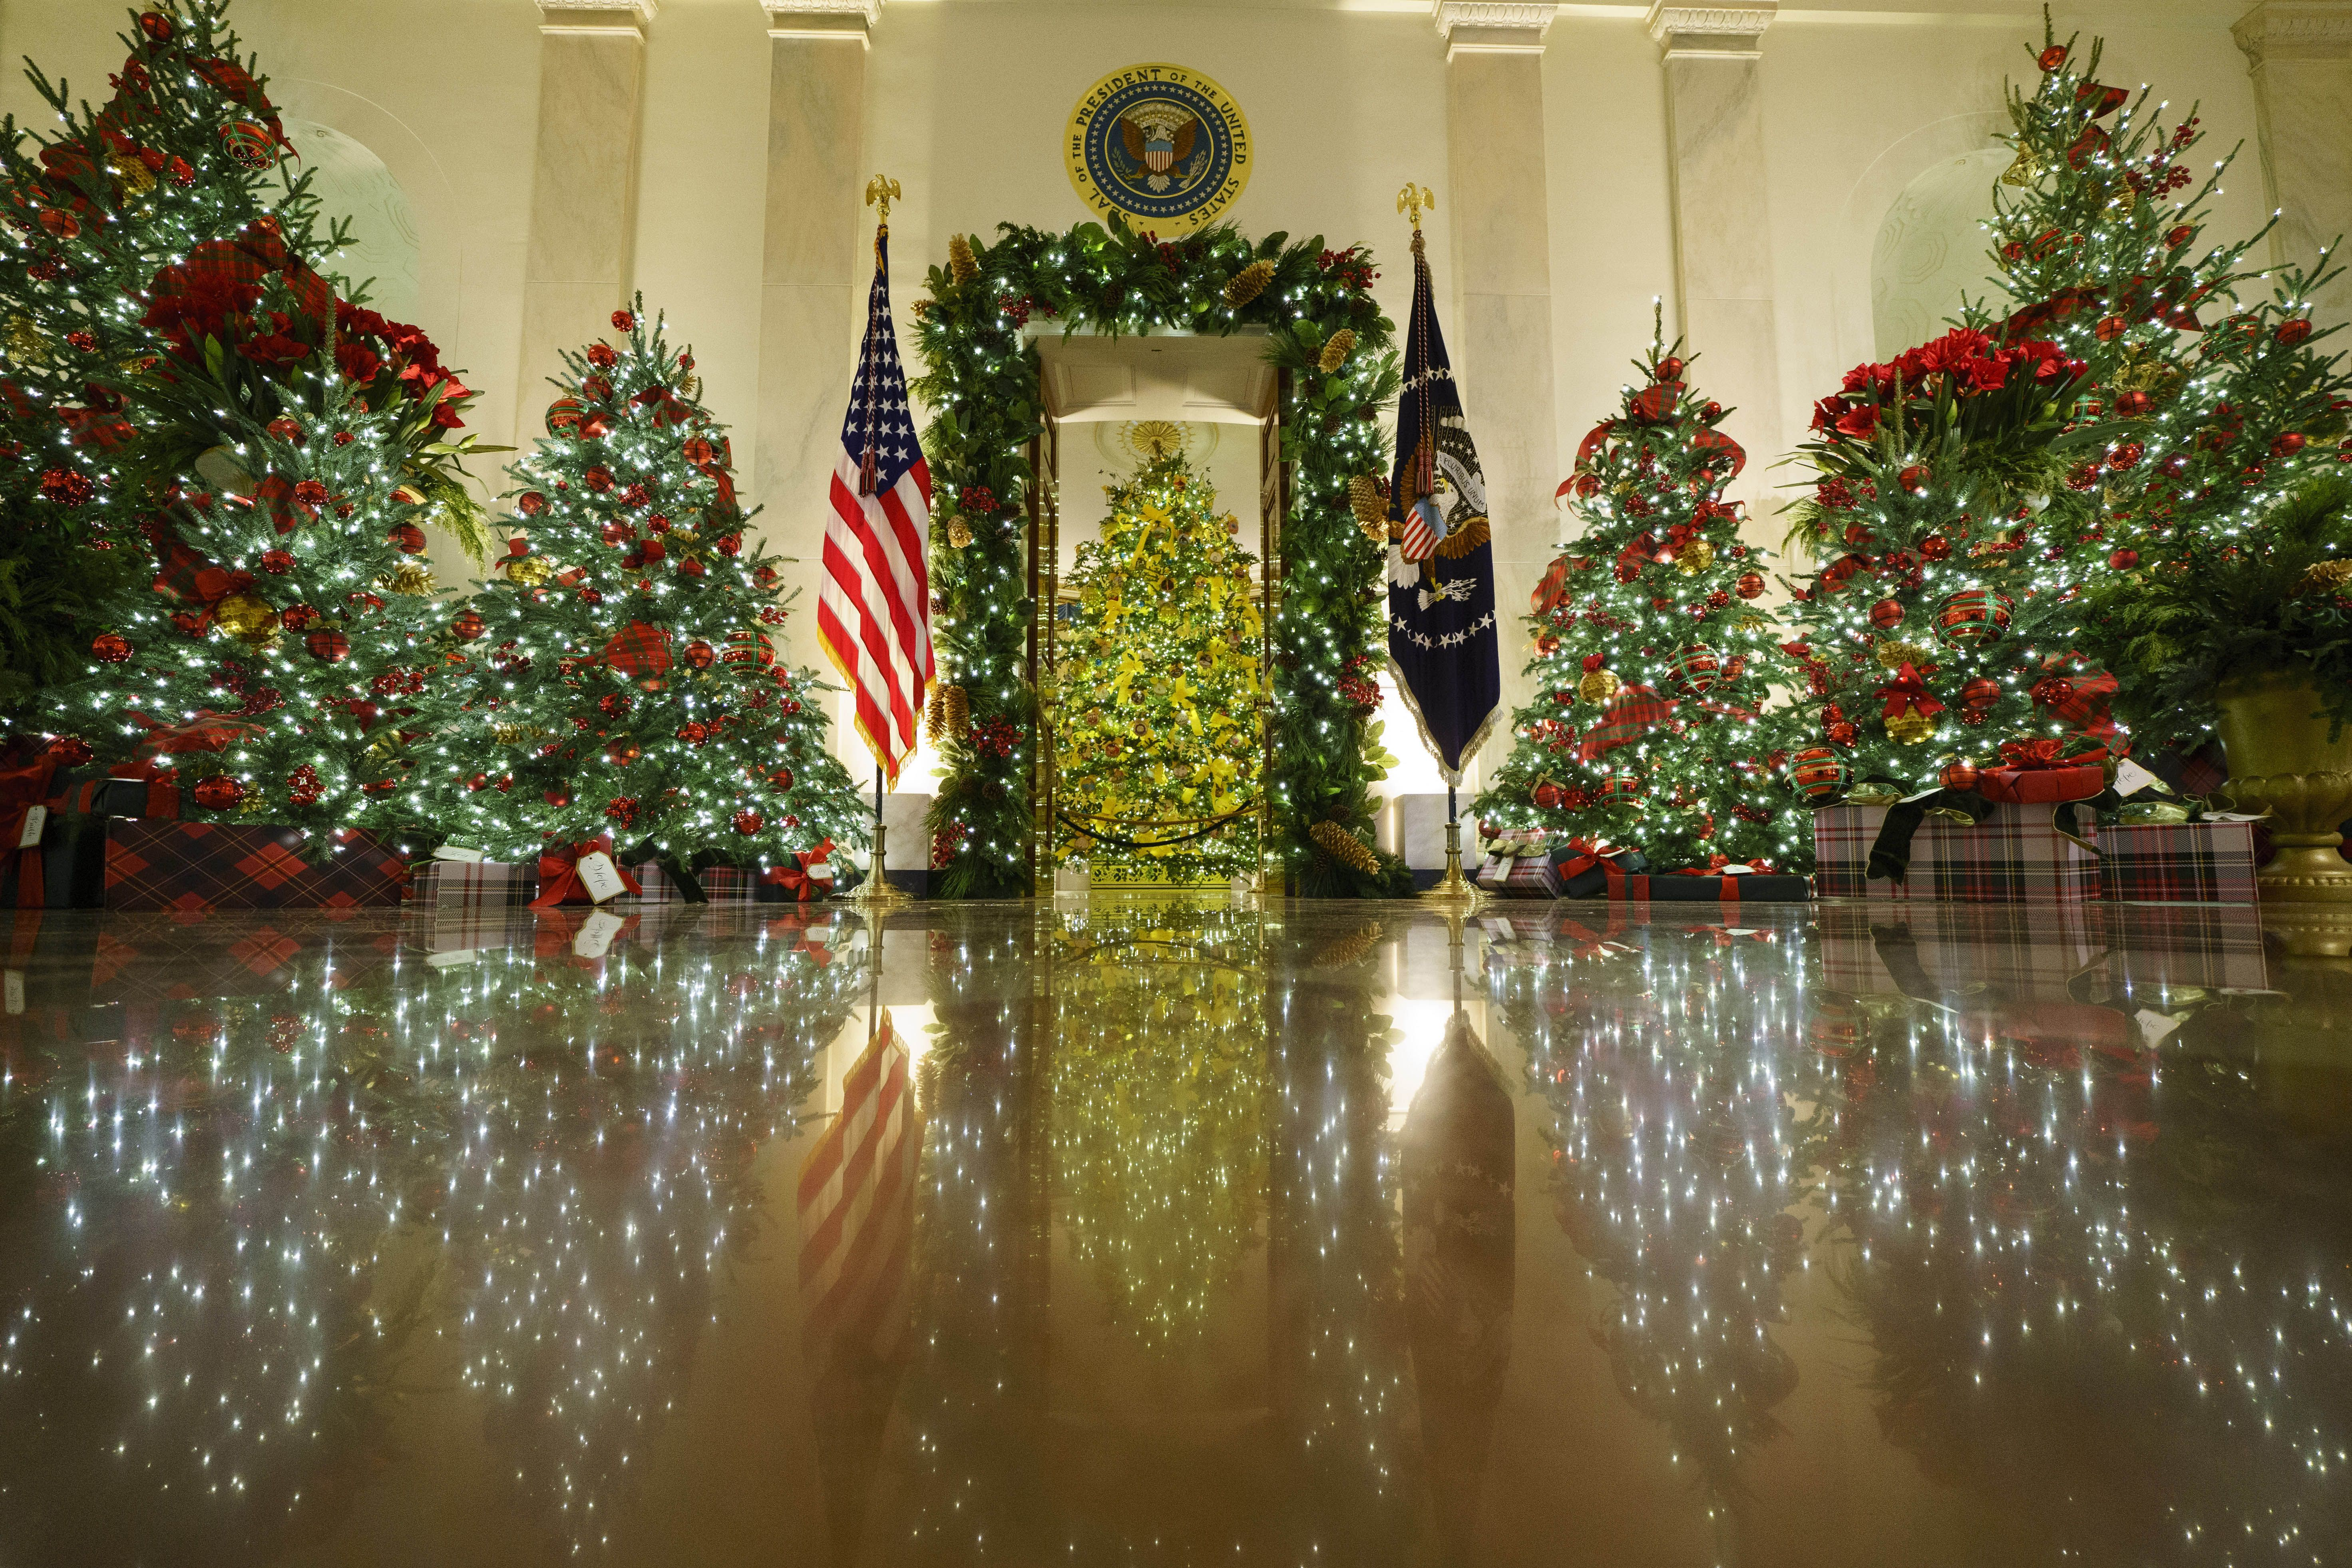 Melania Trump Unveils Christmas Decorations For Final Festive Season At The White House